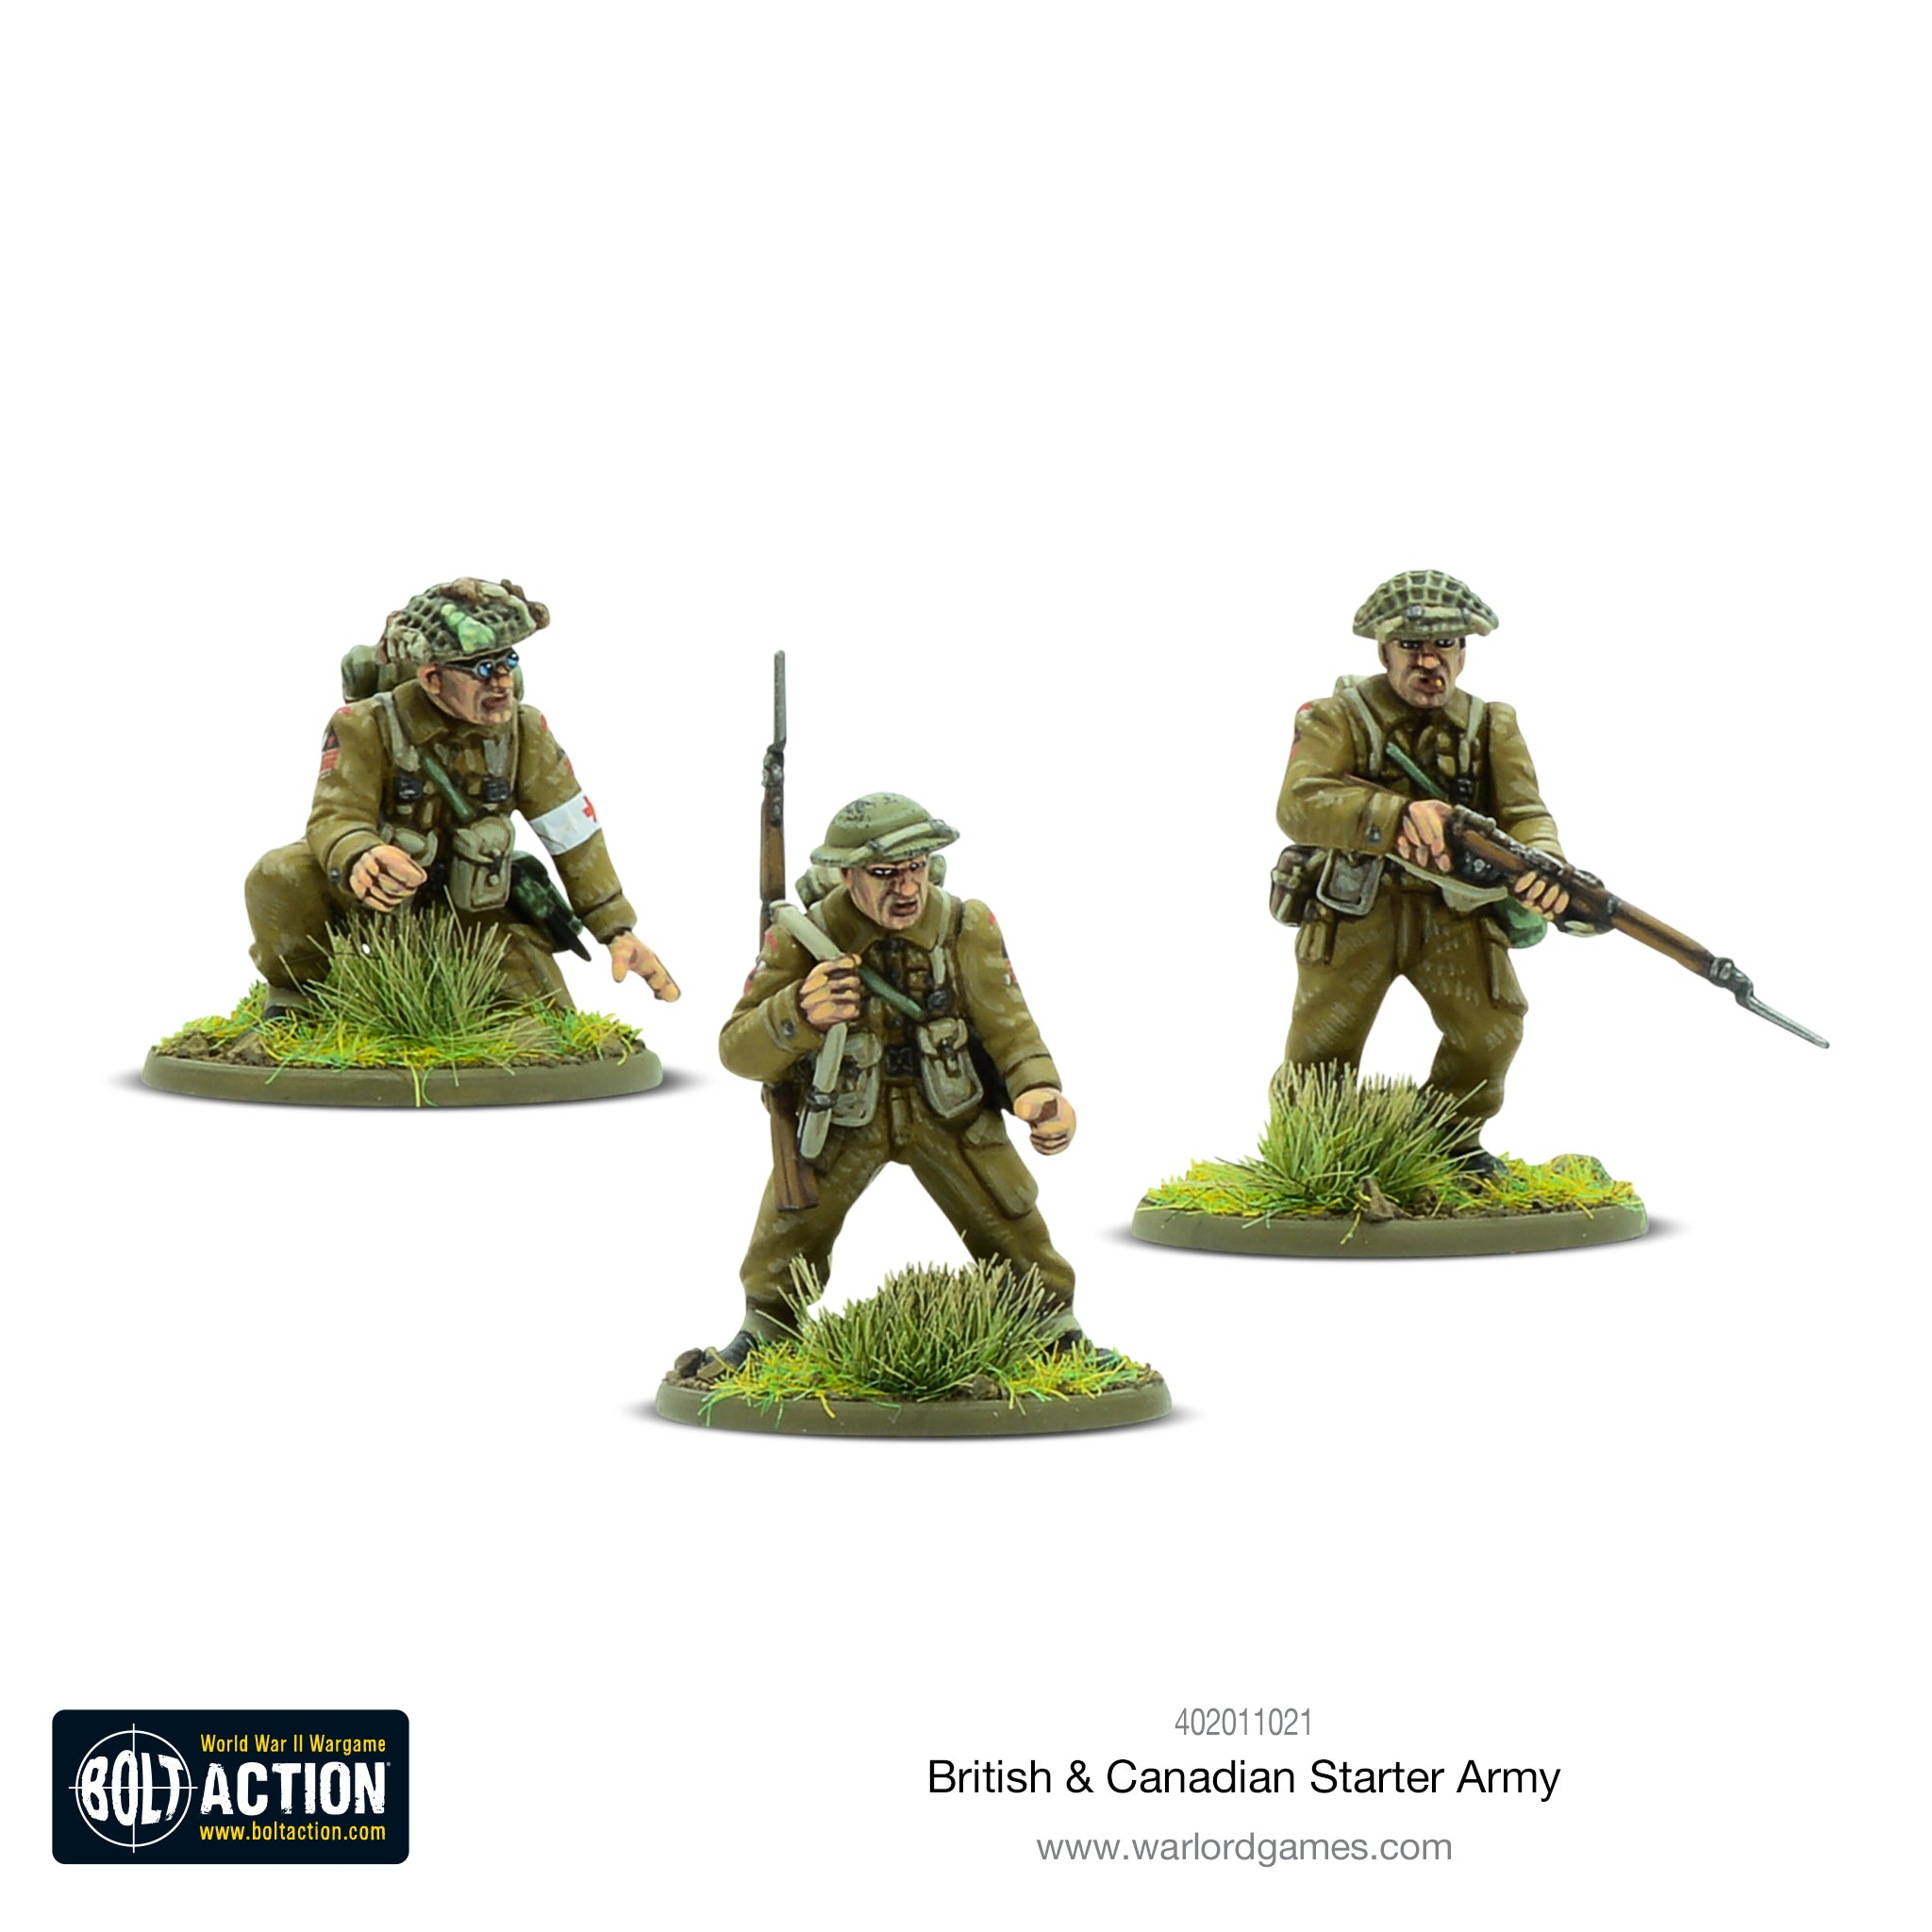 1943-45 Starter Army Warlord Games British & Canadian Army Toys ...